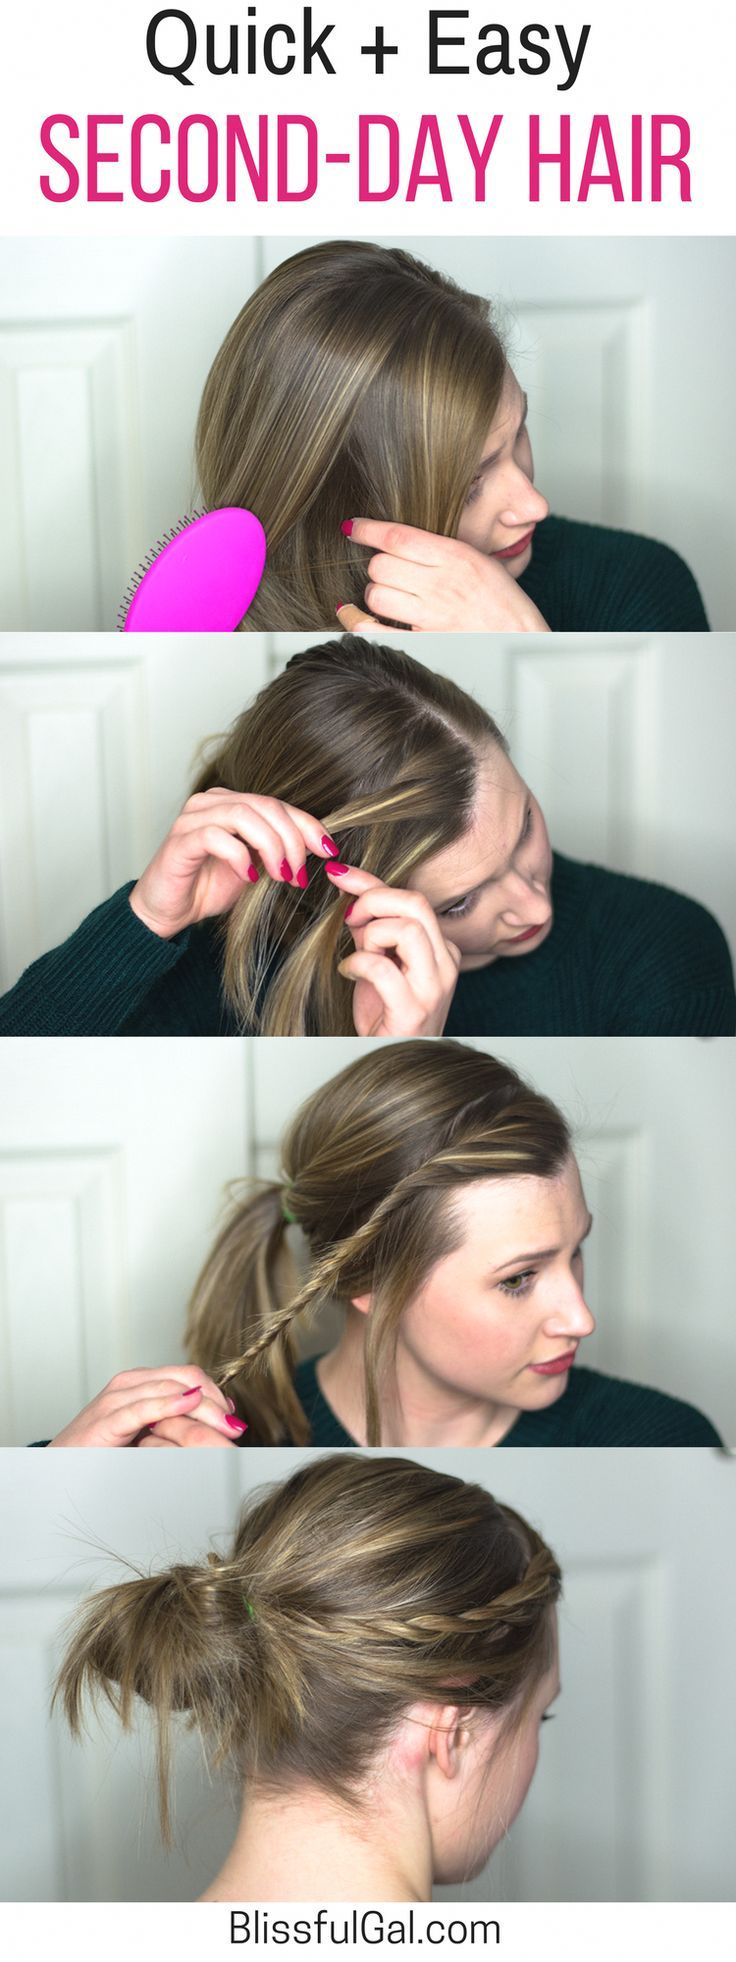 Easy Second-Day Hairstyle- Lazy Girl Hair – Blissful Gal #Easyhairstyles